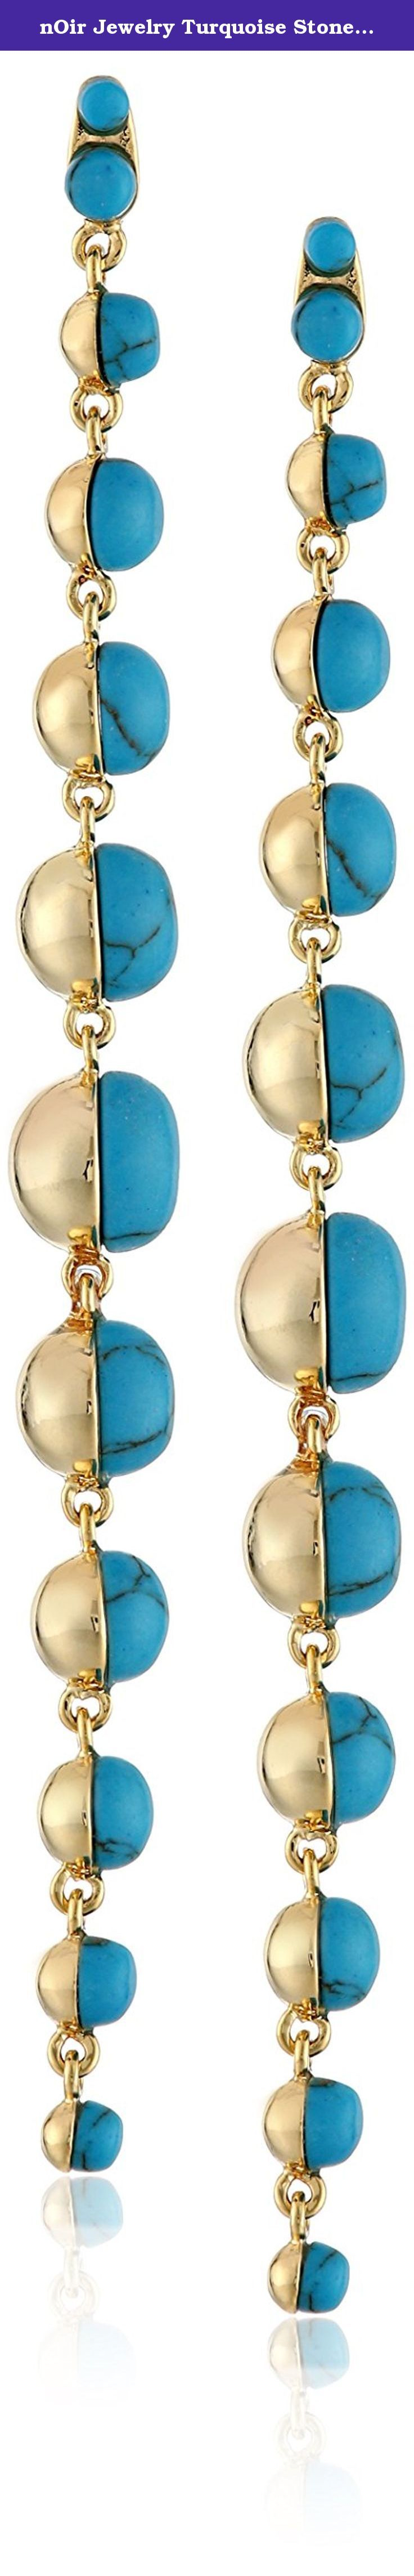 nOir Jewelry Turquoise Stone Cascading Drop Earrings. Made in China.